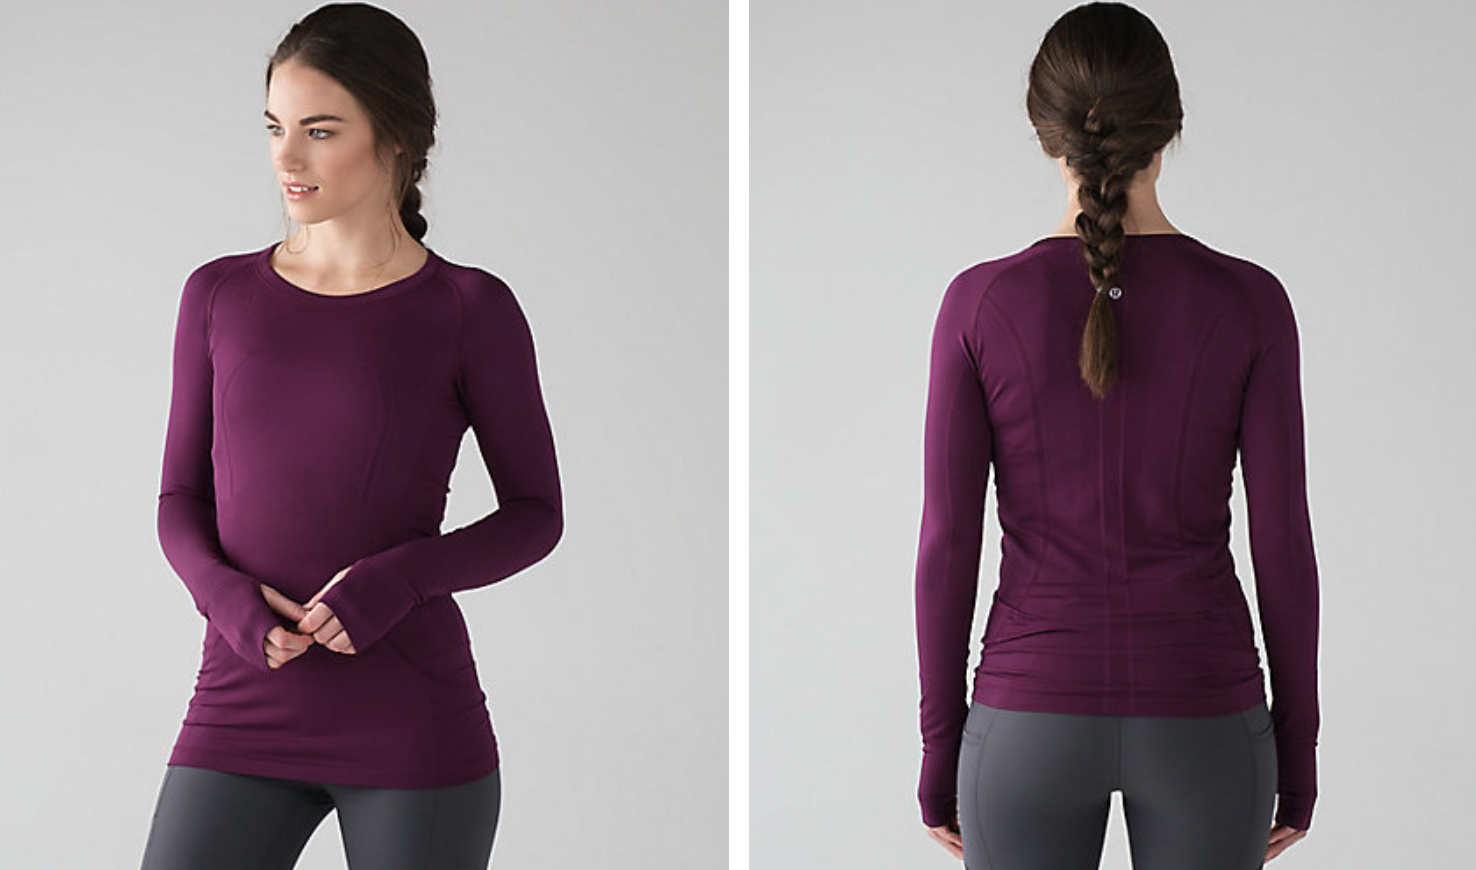 https://api.shopstyle.com/action/apiVisitRetailer?url=https%3A%2F%2Fshop.lululemon.com%2Fp%2Ftops-long-sleeve%2FRun-Swiftly-Long-Sleeve-Crew%2F_%2Fprod4650005%3Frcnt%3D3%26N%3D8b4%26cnt%3D20%26color%3DLW3M18S_028929&site=www.shopstyle.ca&pid=uid6784-25288972-7